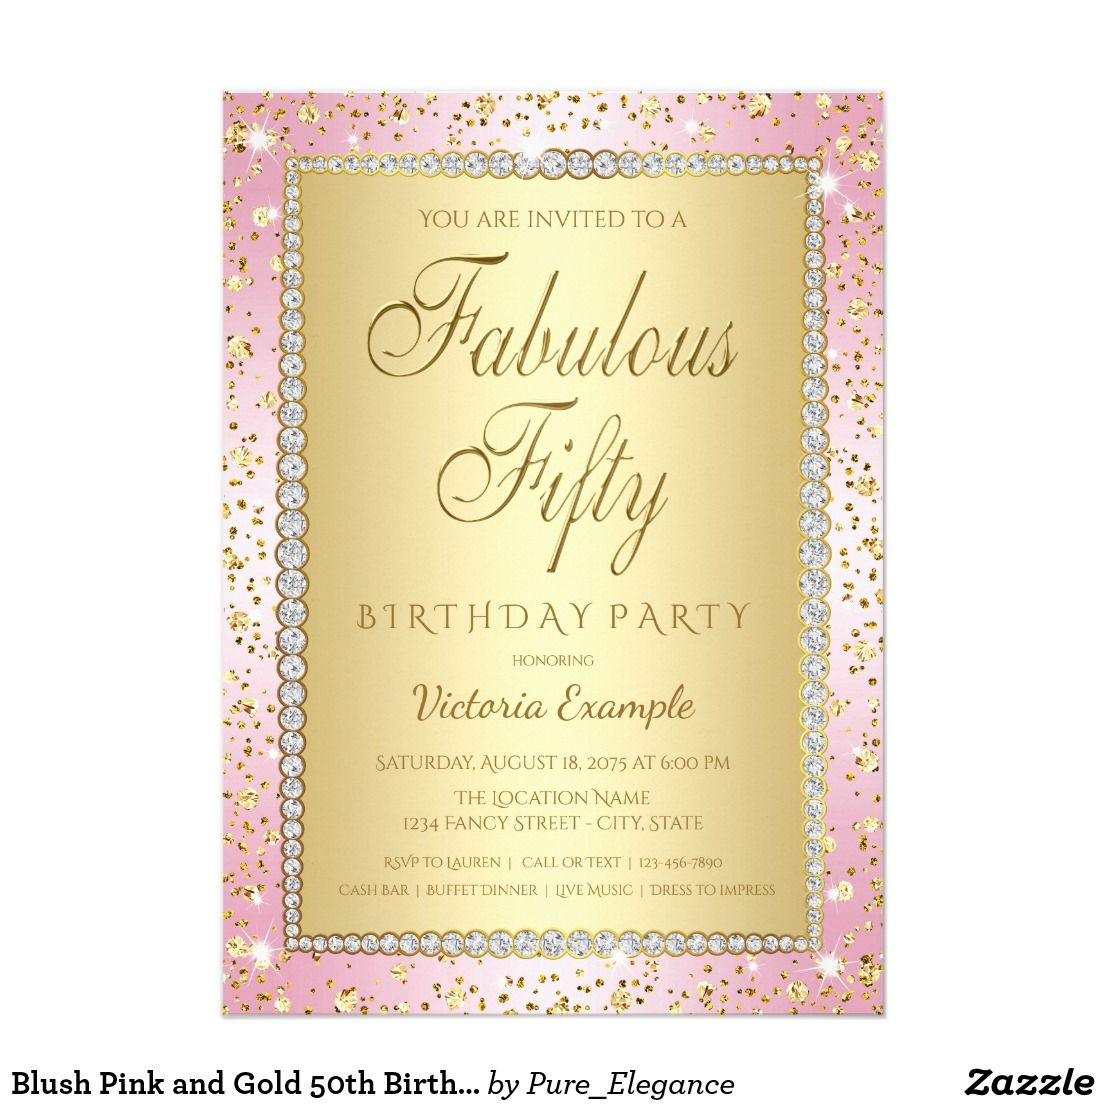 Blush pink and gold 50th birthday party invitation blush pink and gold 50th birthday party invitation blush pink and gold 50th birthday party invitations with elegant gold fabulous fifty script on a stopboris Gallery